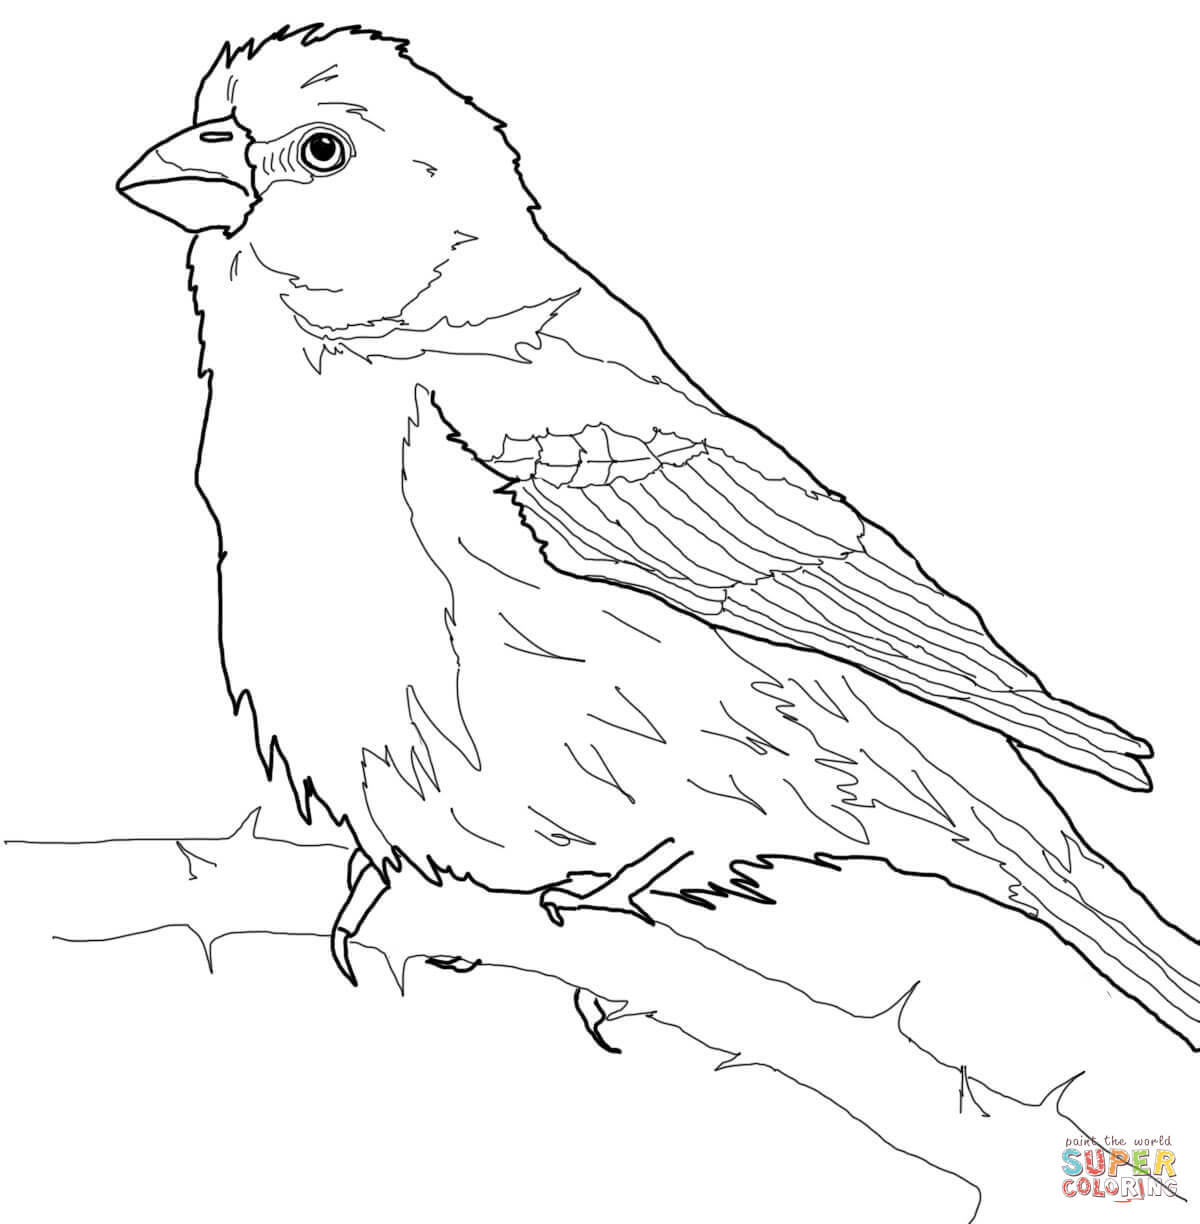 Finch coloring #4, Download drawings